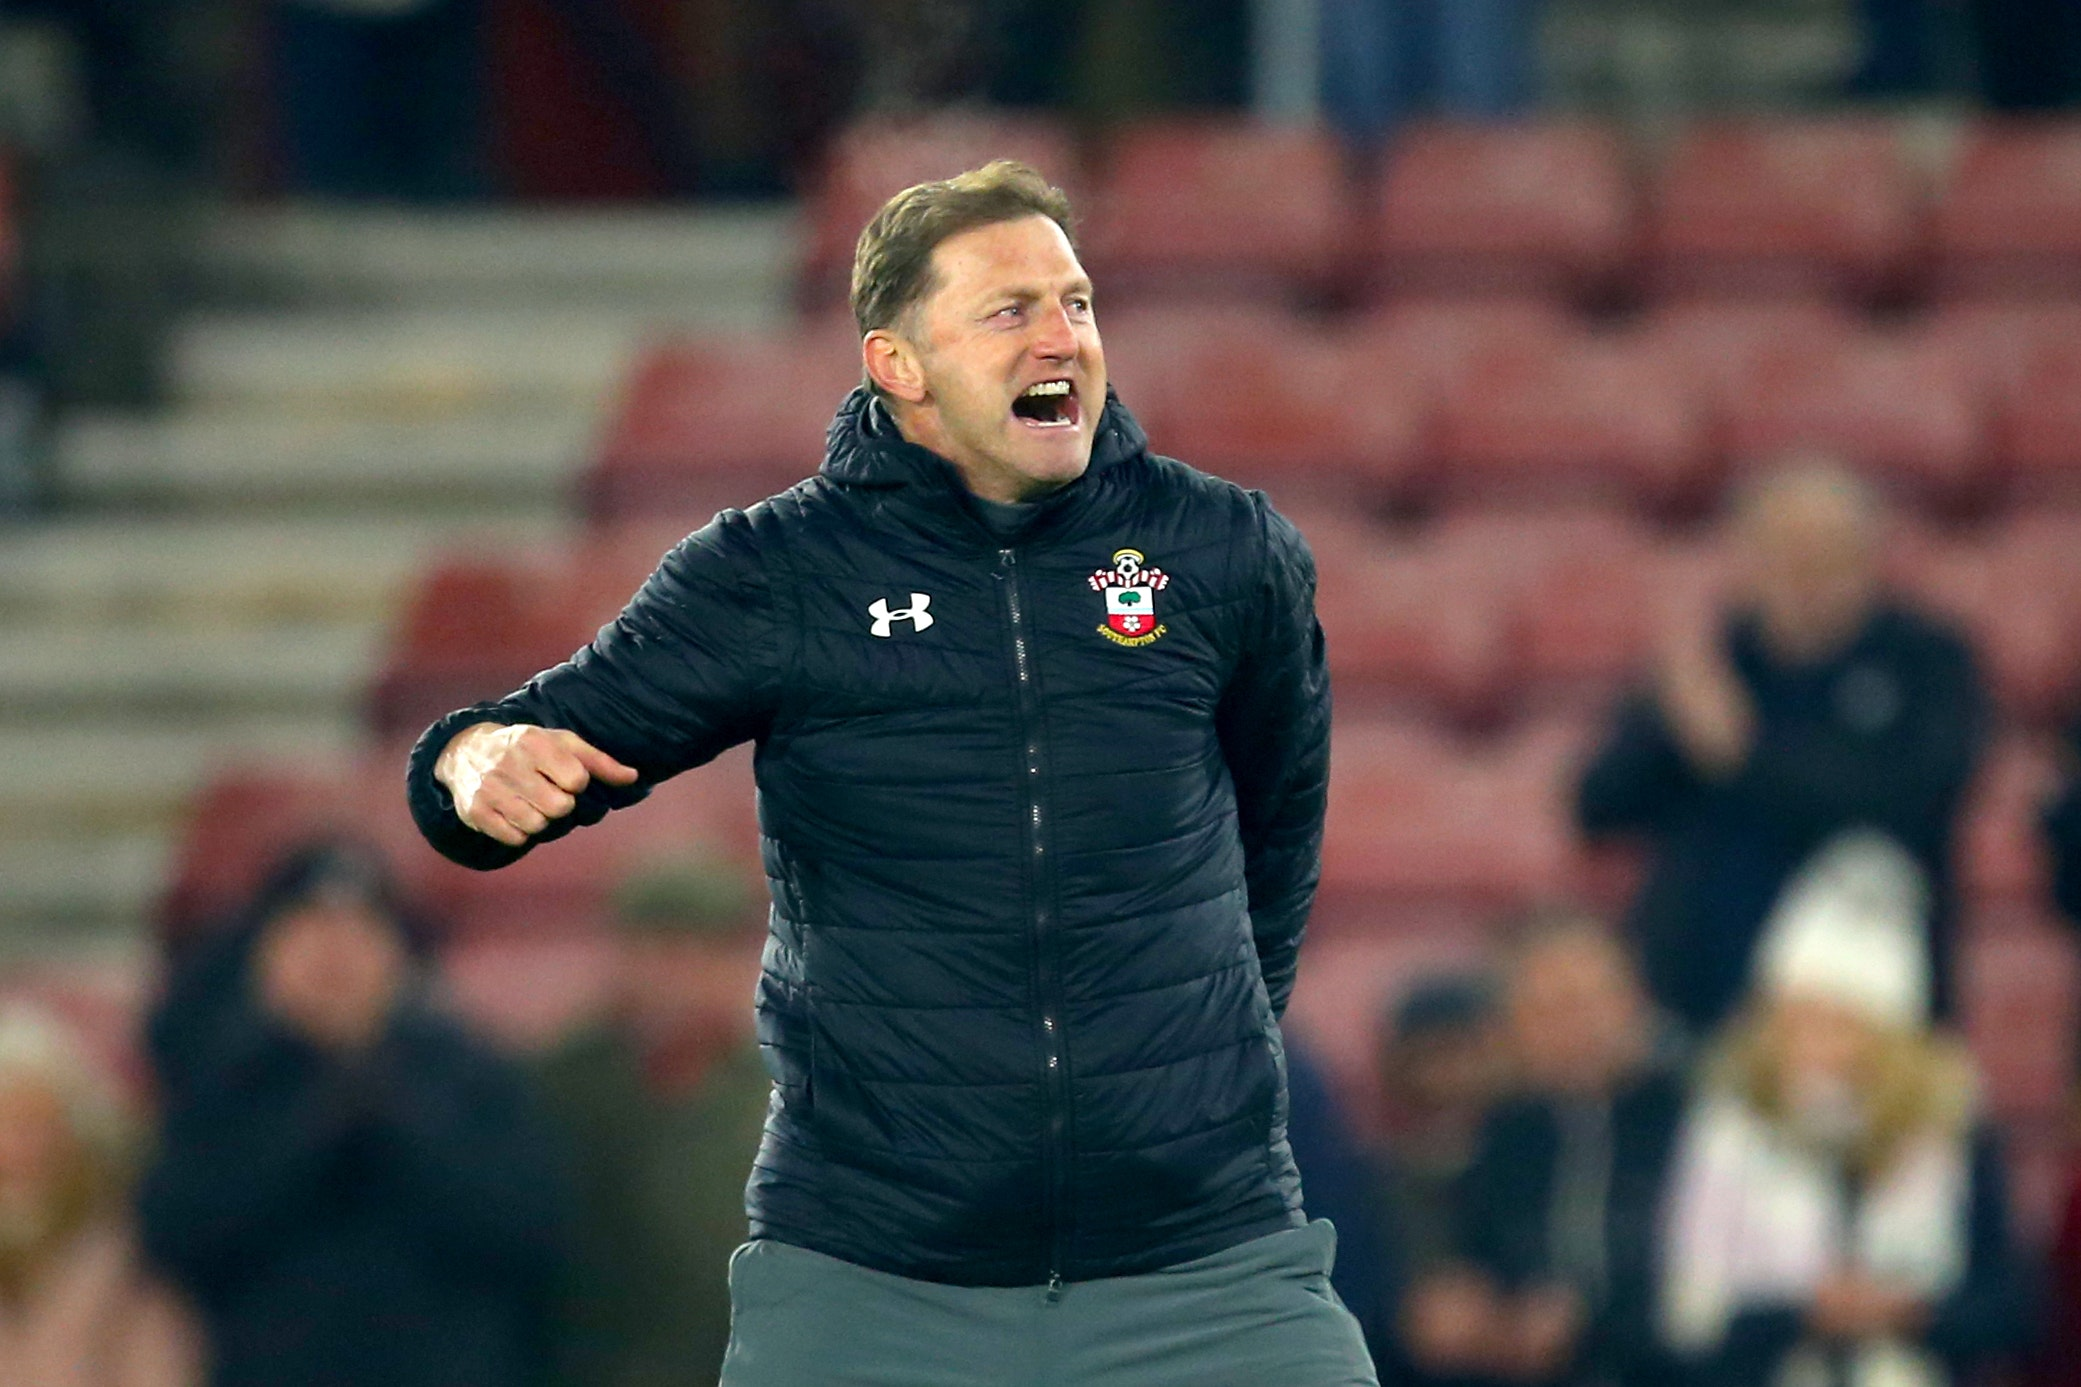 Hasenhuttl: I love my job as much as my Champions League days